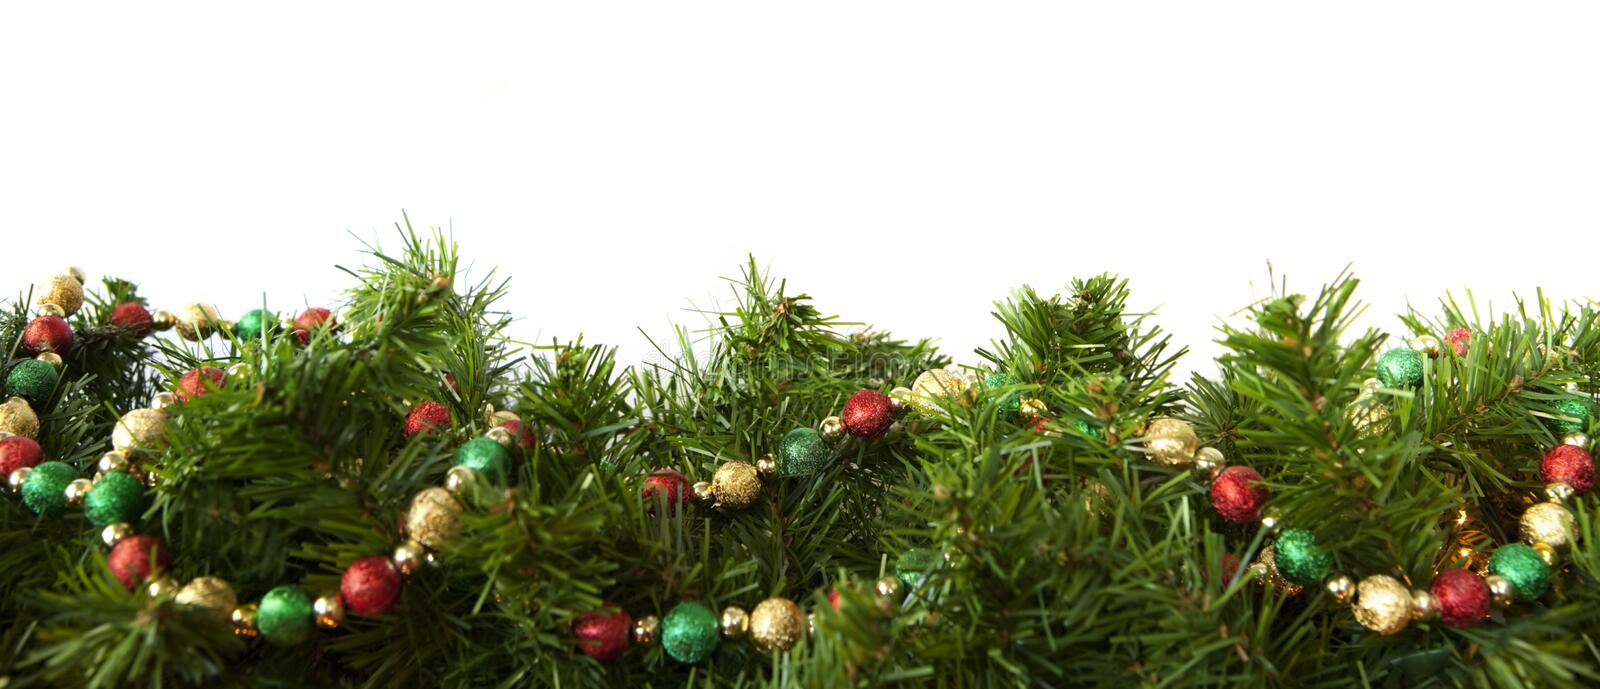 Download Christmas Garland stock photo. Image of nobody, baubles - 15791196